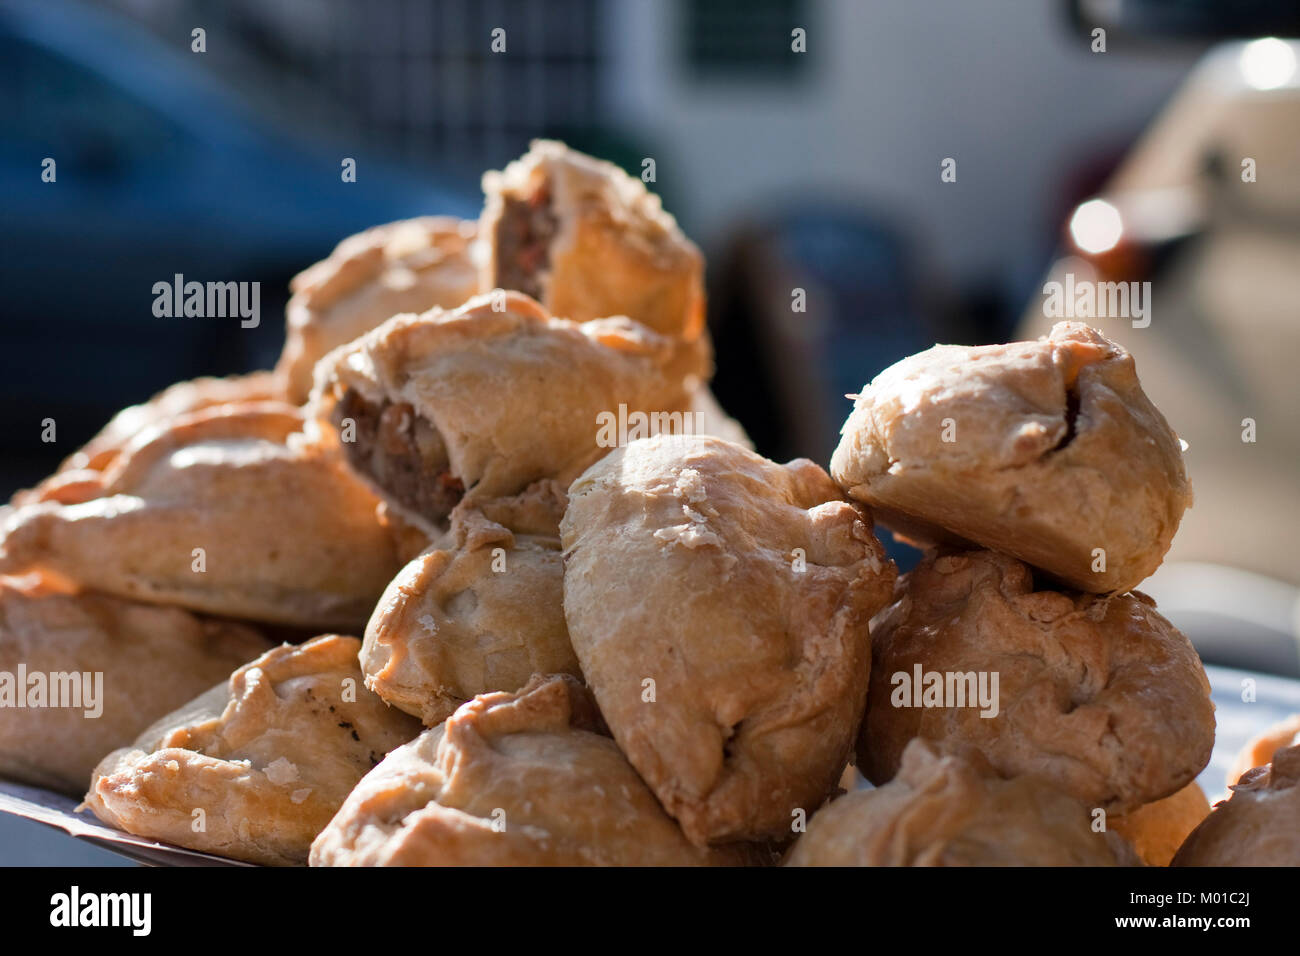 Piled up Cornish pasties on s street market stall - Stock Image